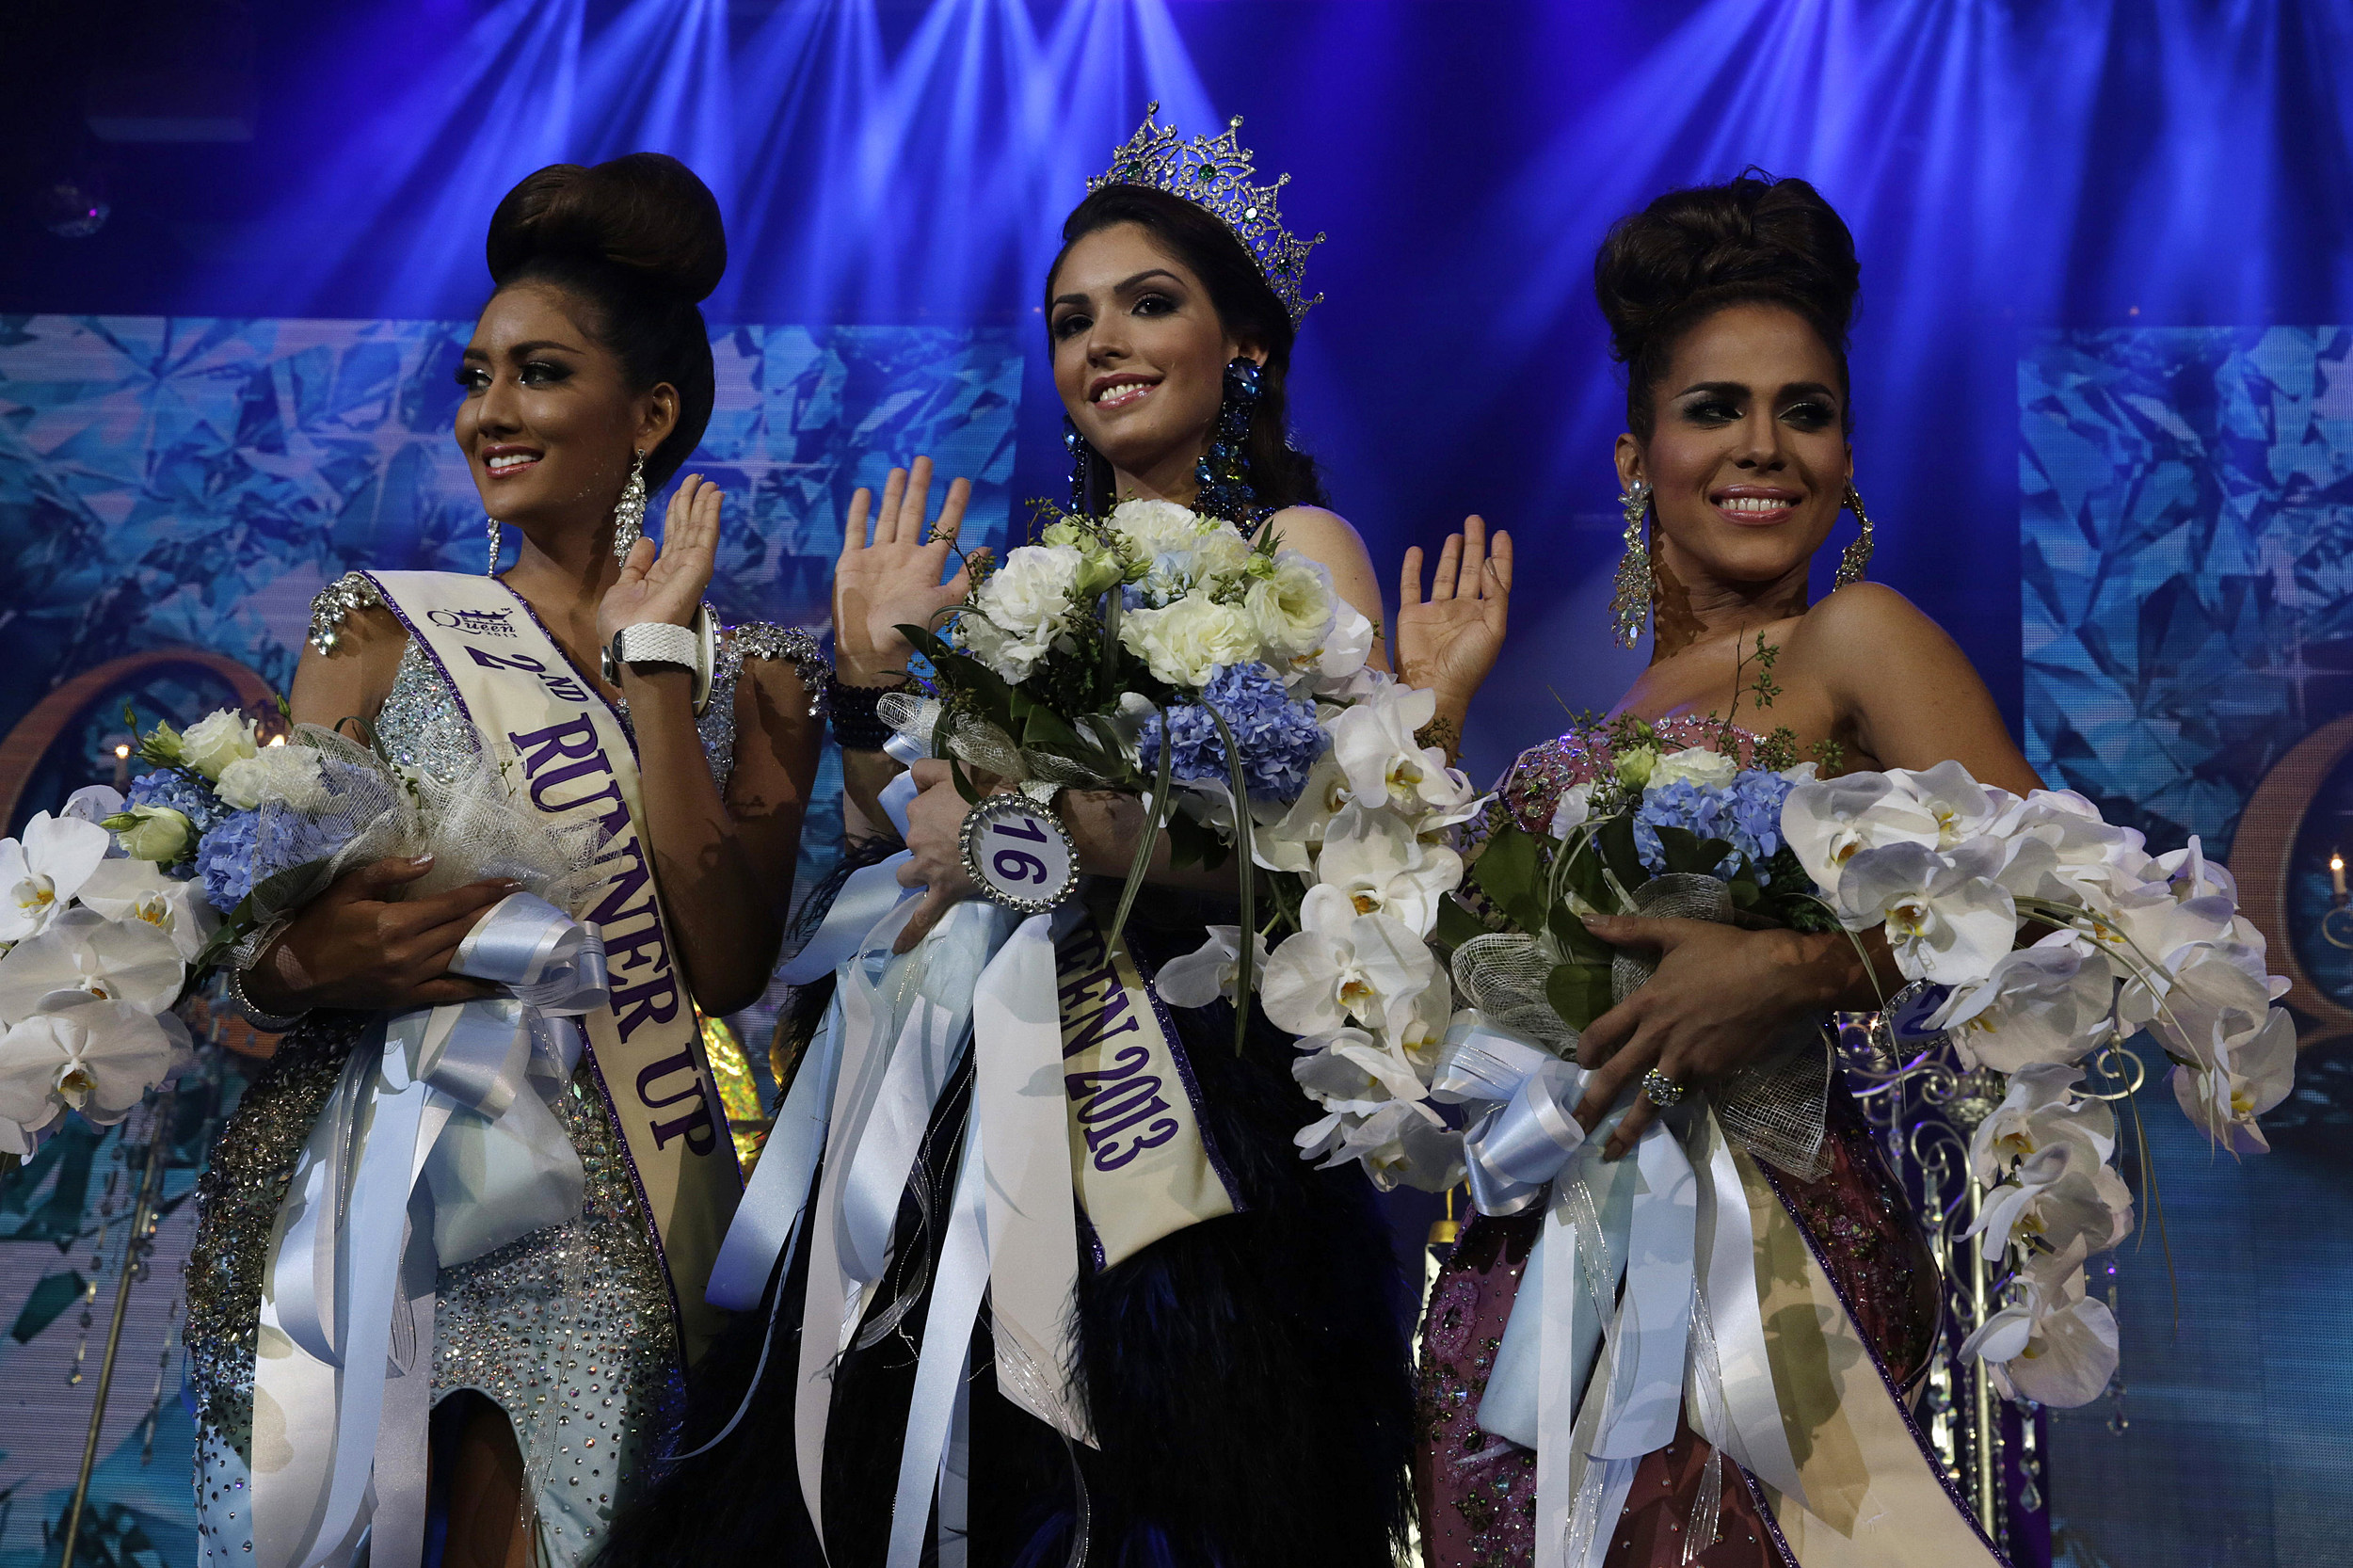 Beauty Pageant(Photo by Paula Bronstein/Getty Images)